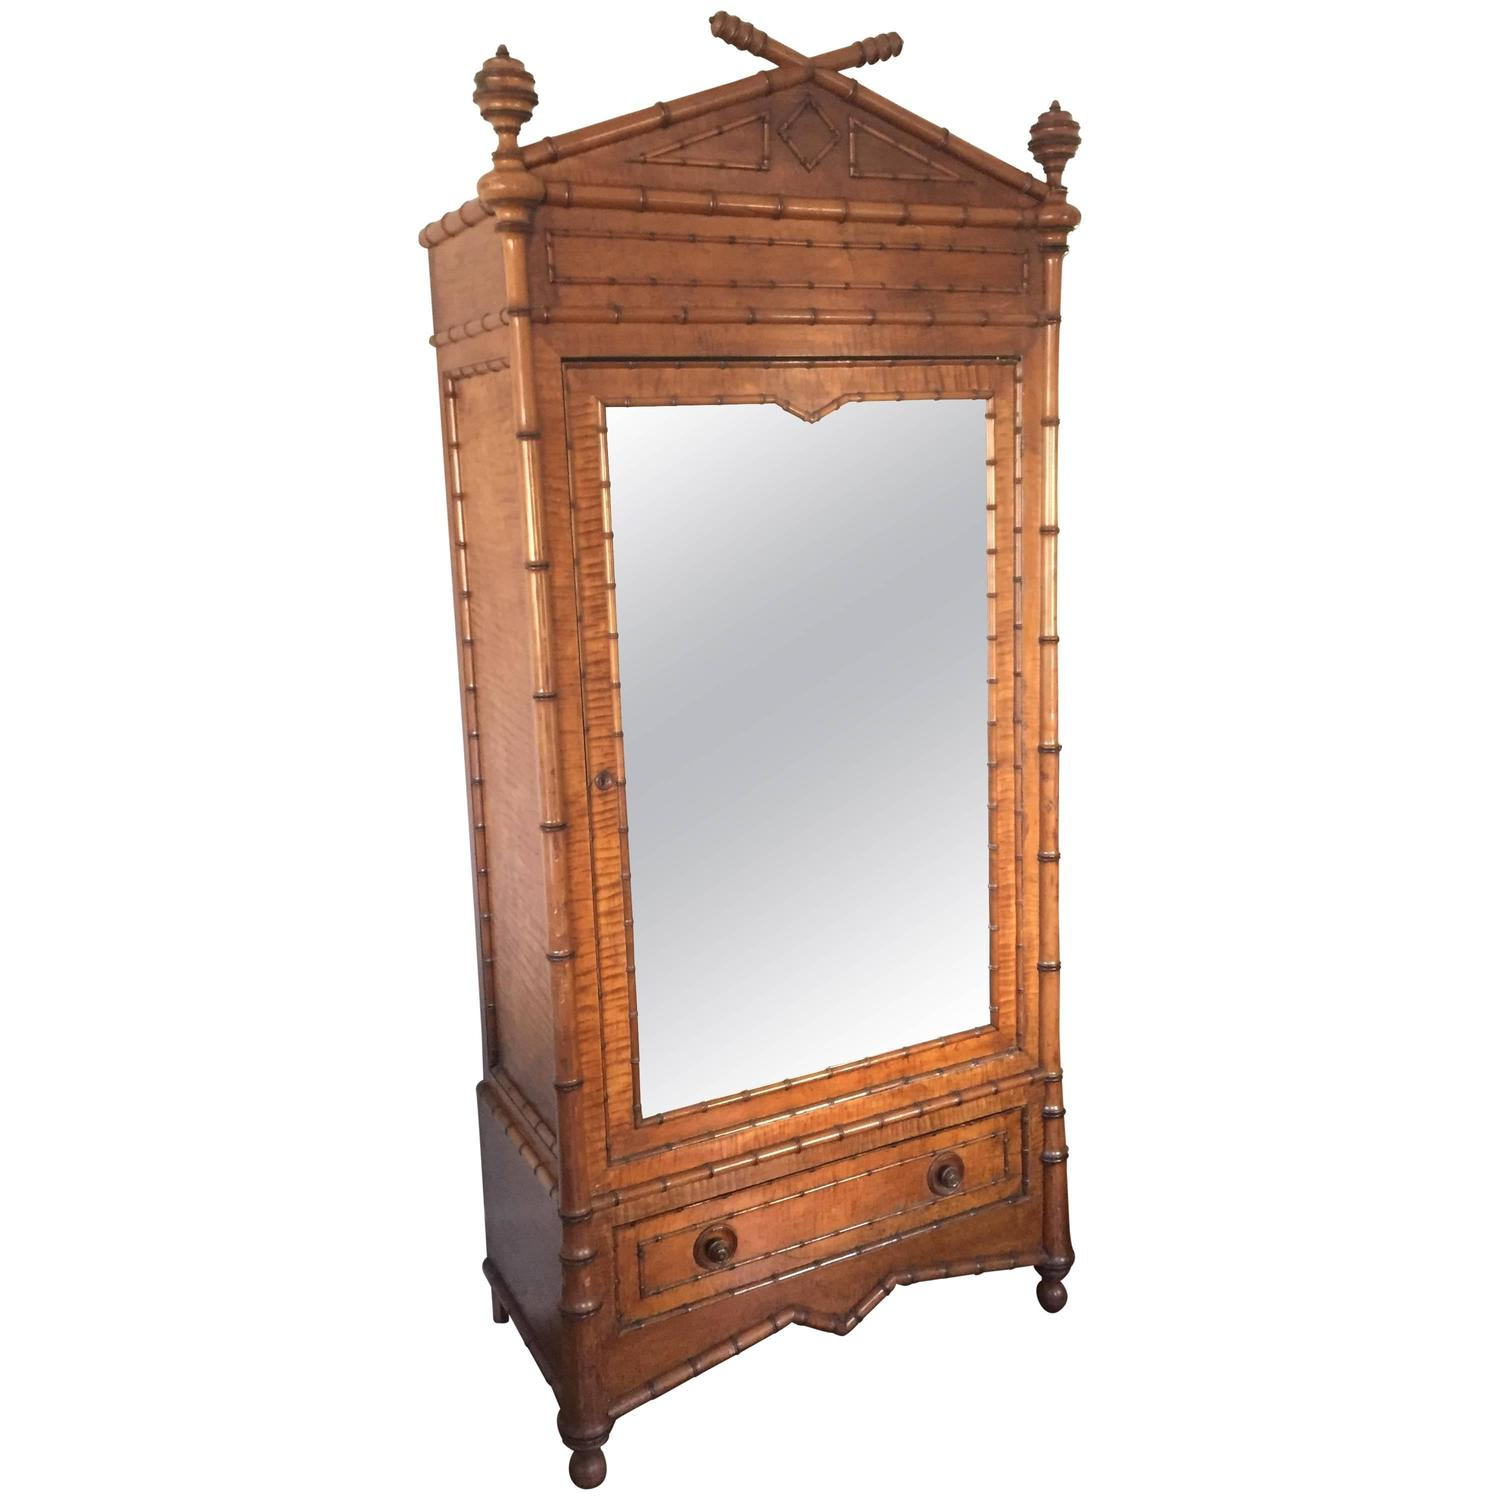 Mirrored Armoire For Sale 28 Images Eloise Mirrored Armoire For Sale Cottage Bungalow Post